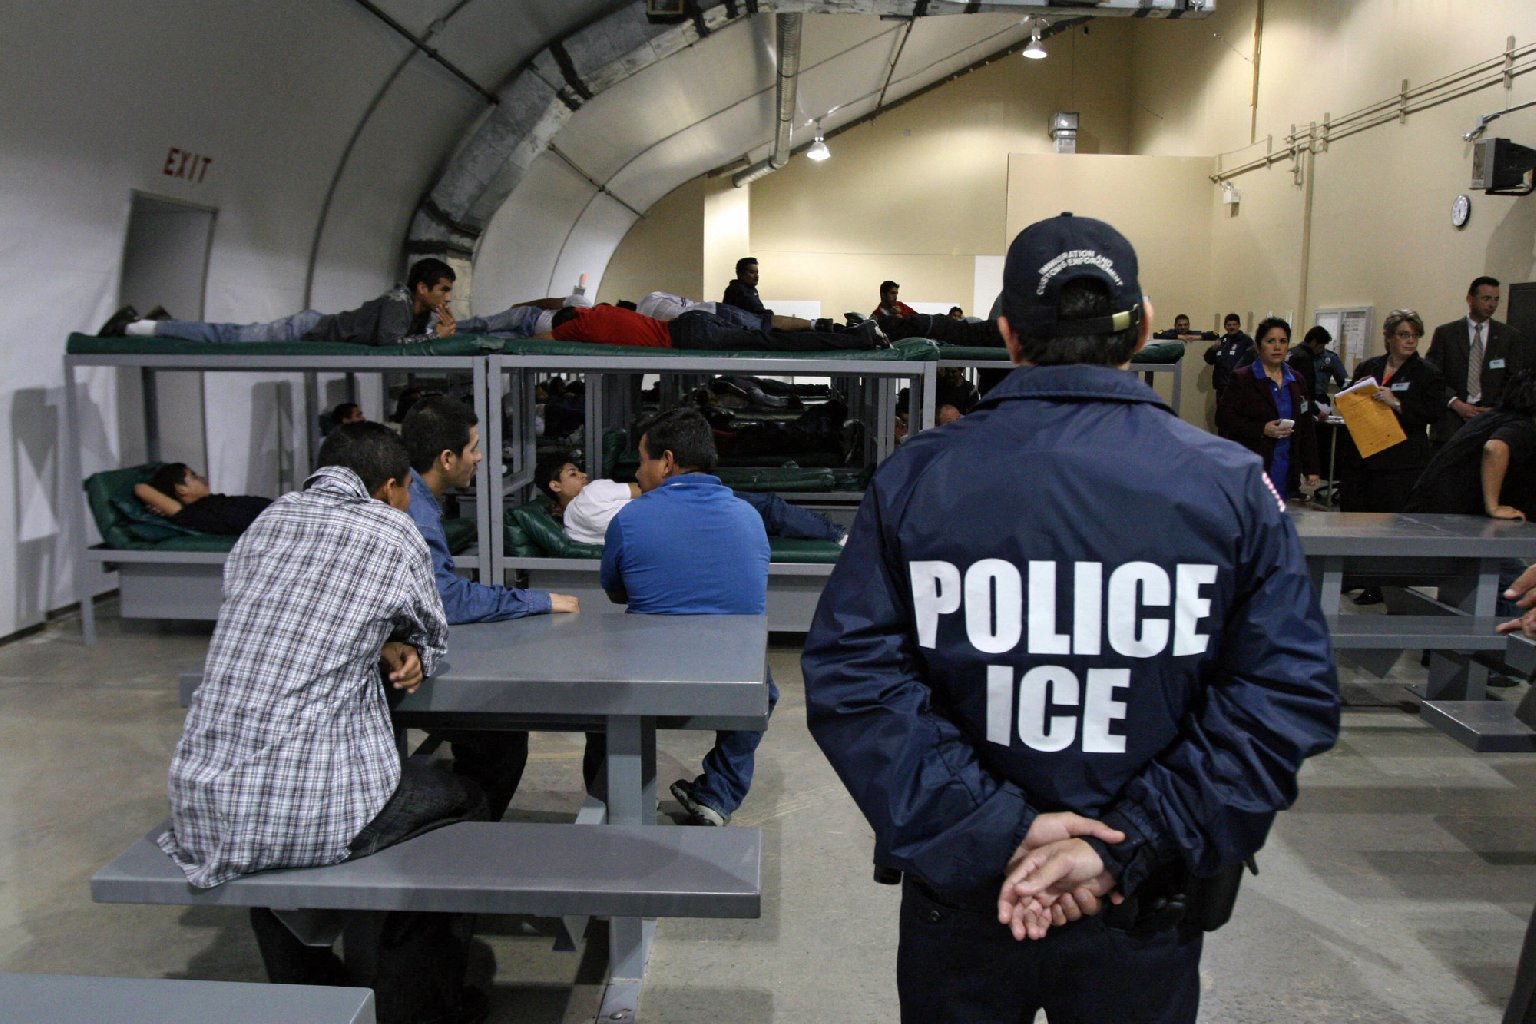 An Immigration and Customs Enforcement officer guards a group of 116 Salvadorean immigrants that wait to be deported,at Willacy Detention facility in Raymondville, Texas. (Jose Cabeza/AFP/Getty Images)